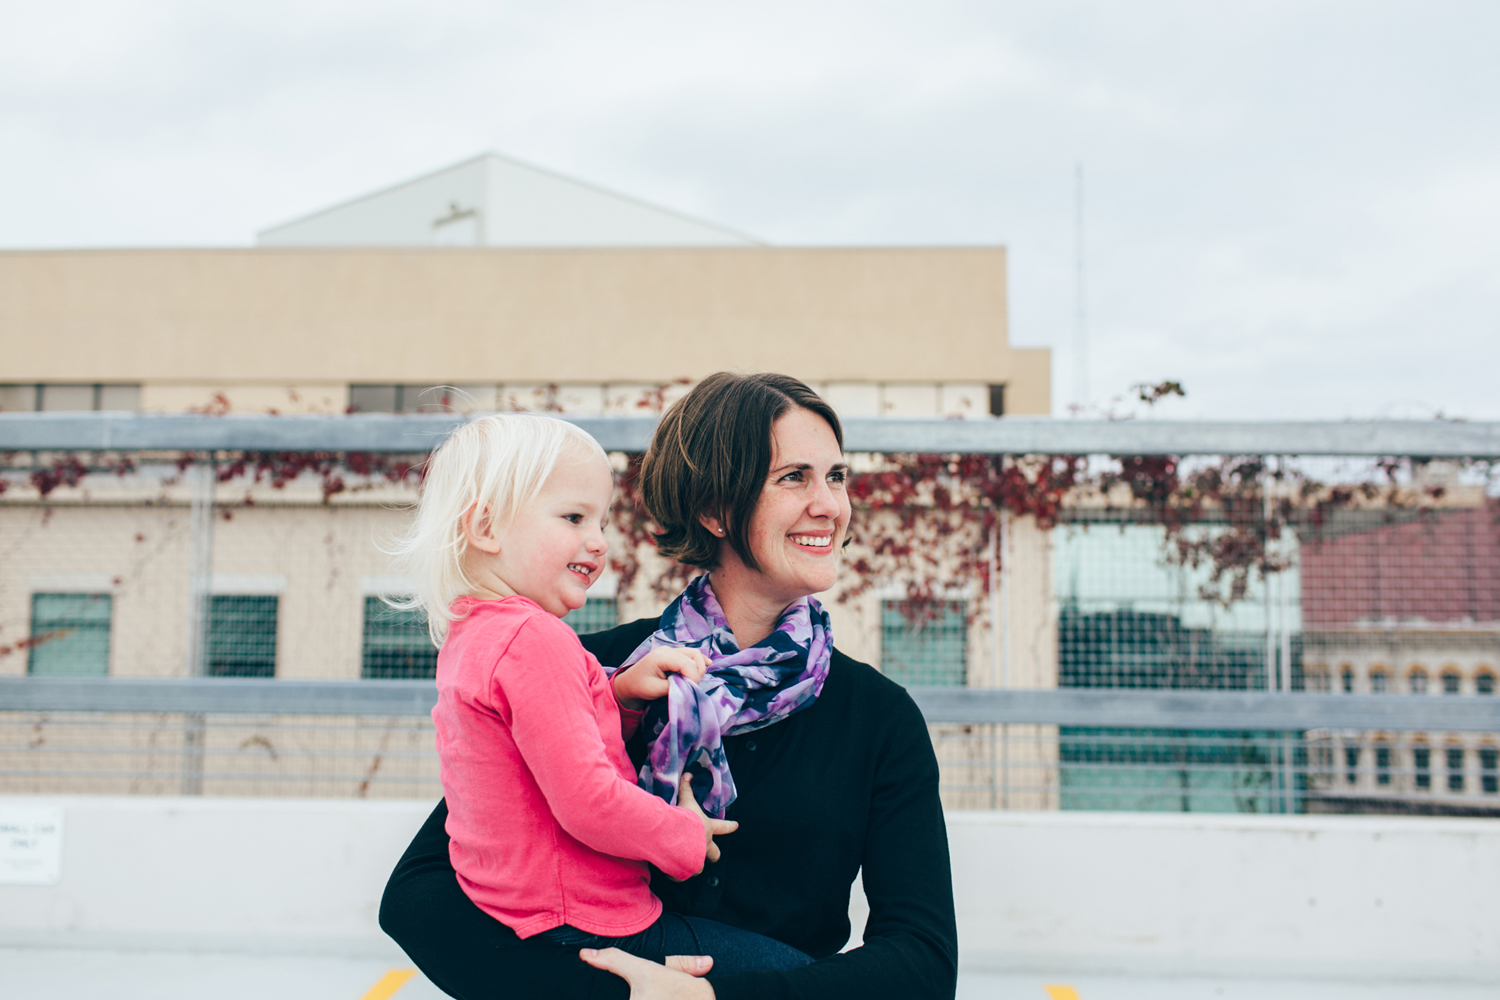 Jillian VanZytveld Photography - Grand Rapids Lifestyle Photography - 15.jpg